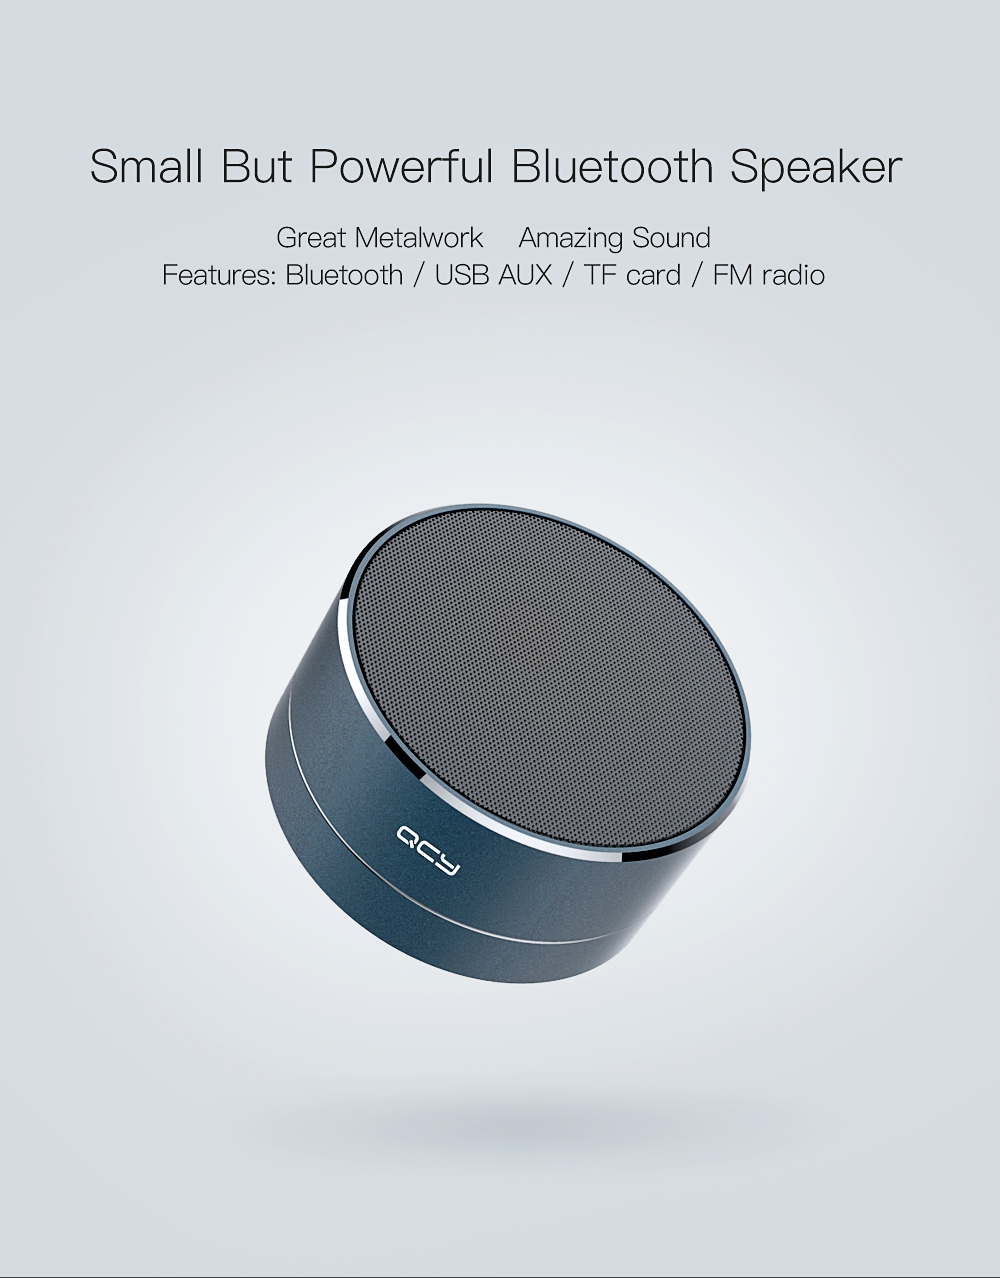 Qcy A10 Mini Portable Bluetooth Speaker Metal Subwoof With Bri Xiaomi Mifa F10 Outdoor Ipx6 Waterproof Product Description